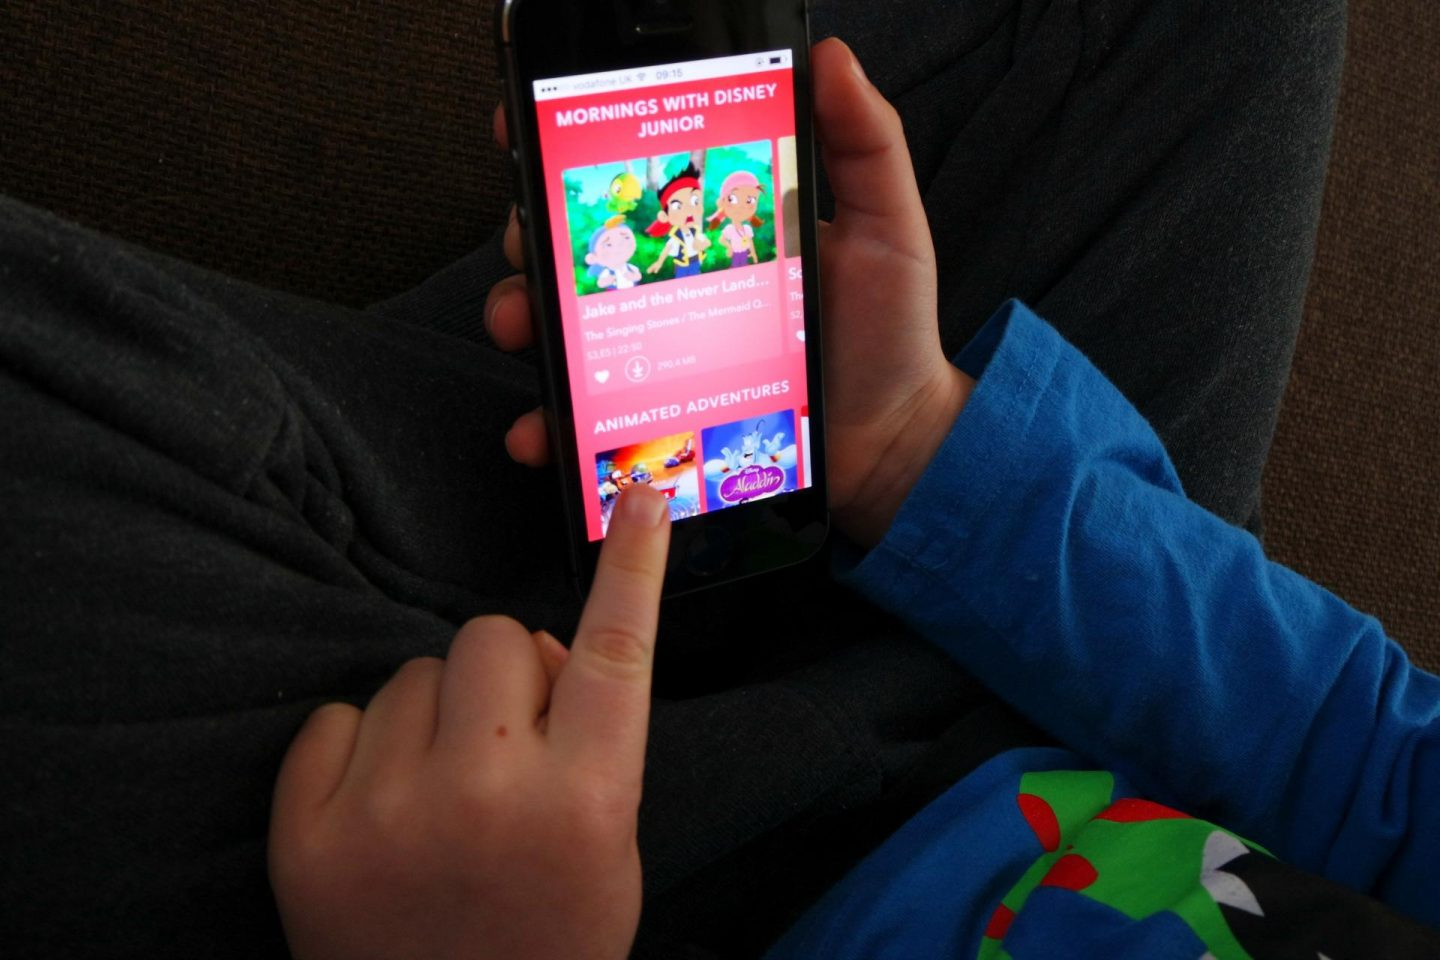 Boy playing with Disney app on phone